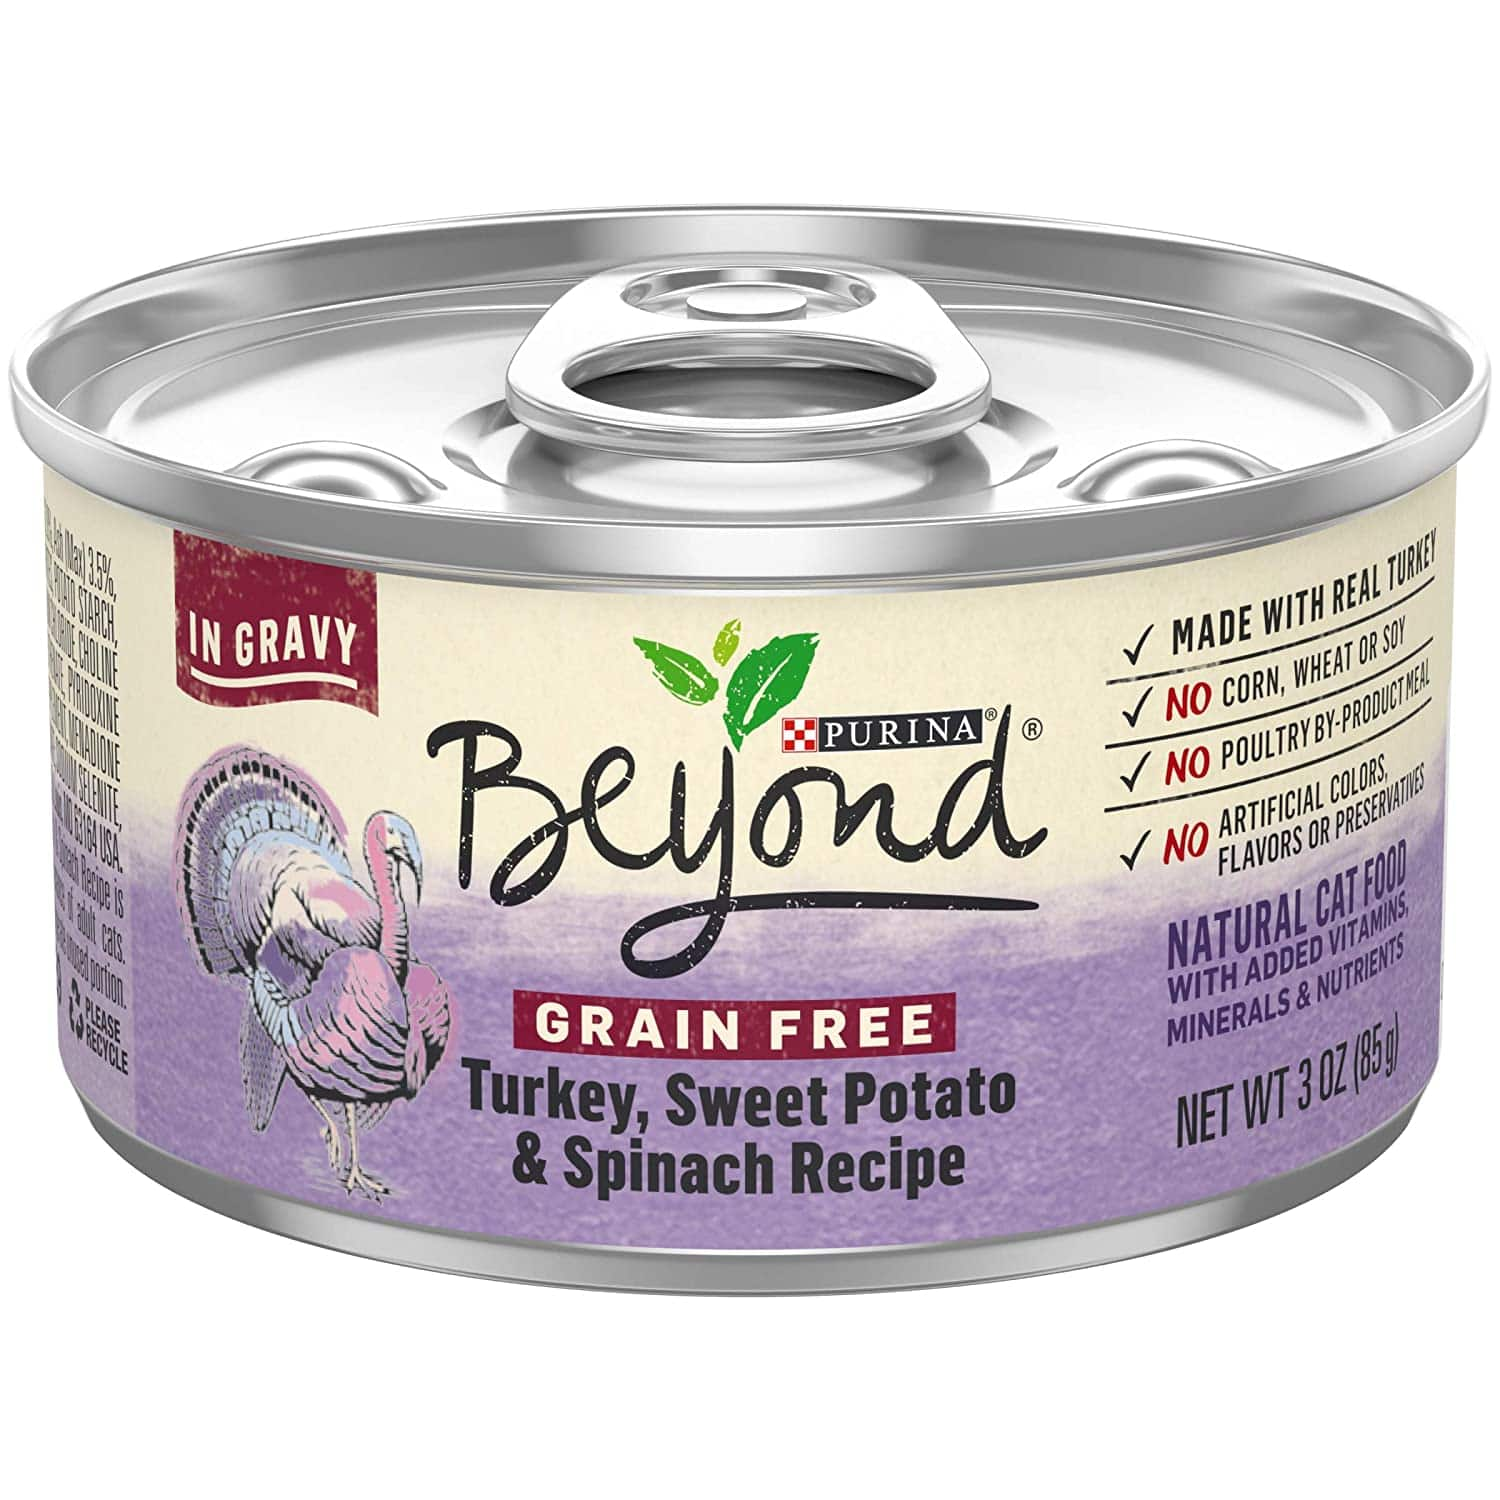 Purina Beyond Grain Free Natural Adult Wet Cat Food~12 x 3oz Cans~$7.29 Or Less @ Amazon~Free Shipping With Prime!